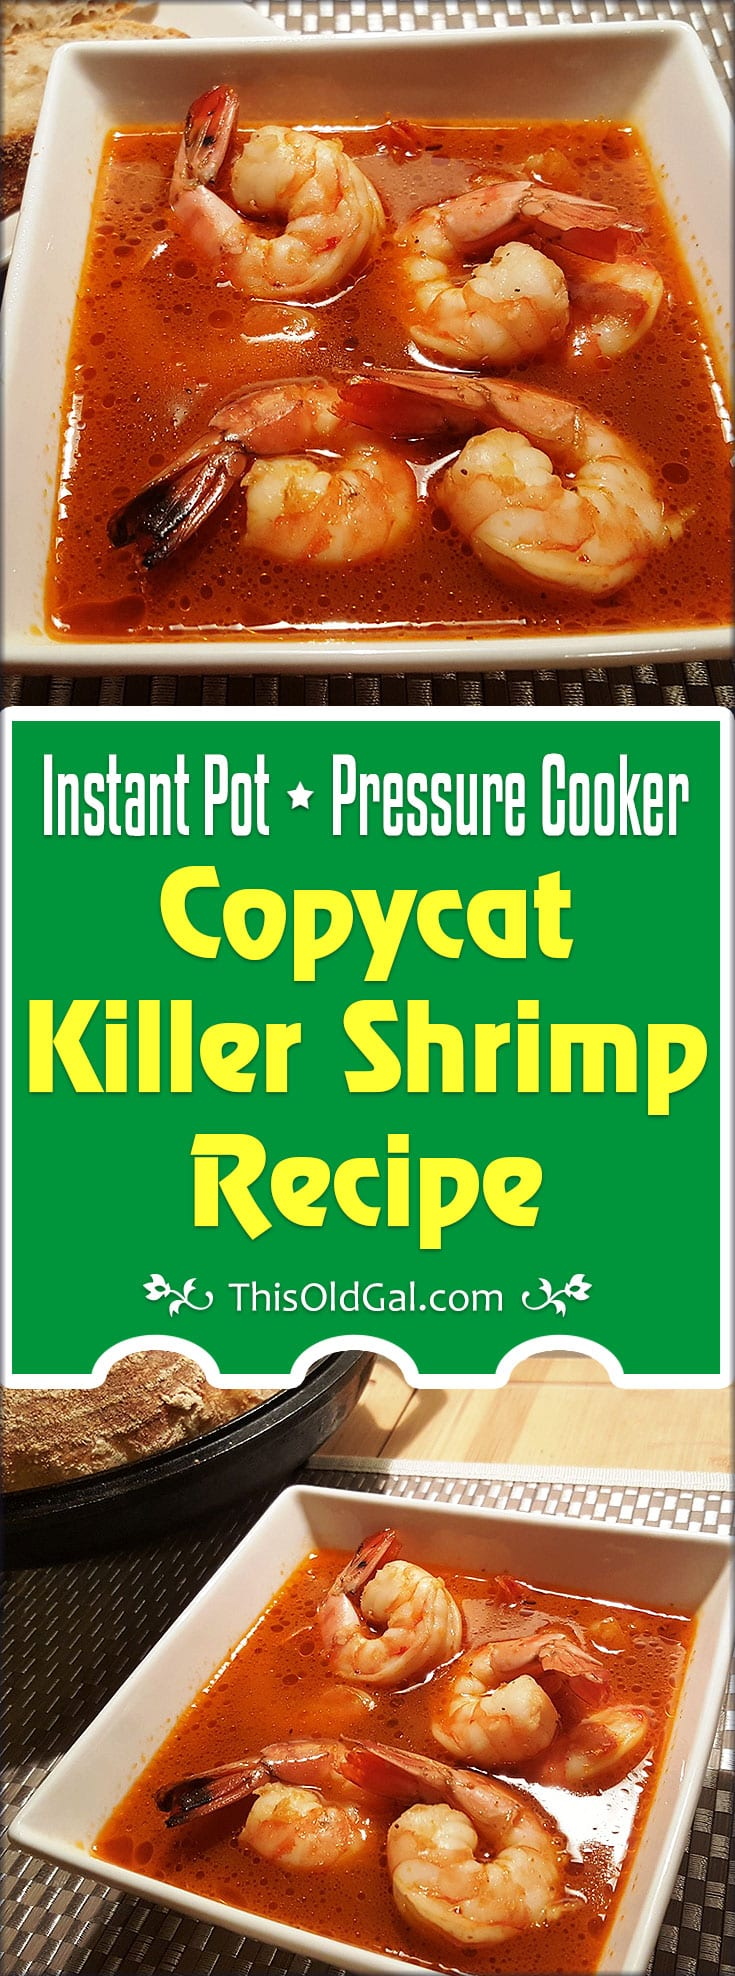 Pressure Cooker Copycat Killer Shrimp Recipe